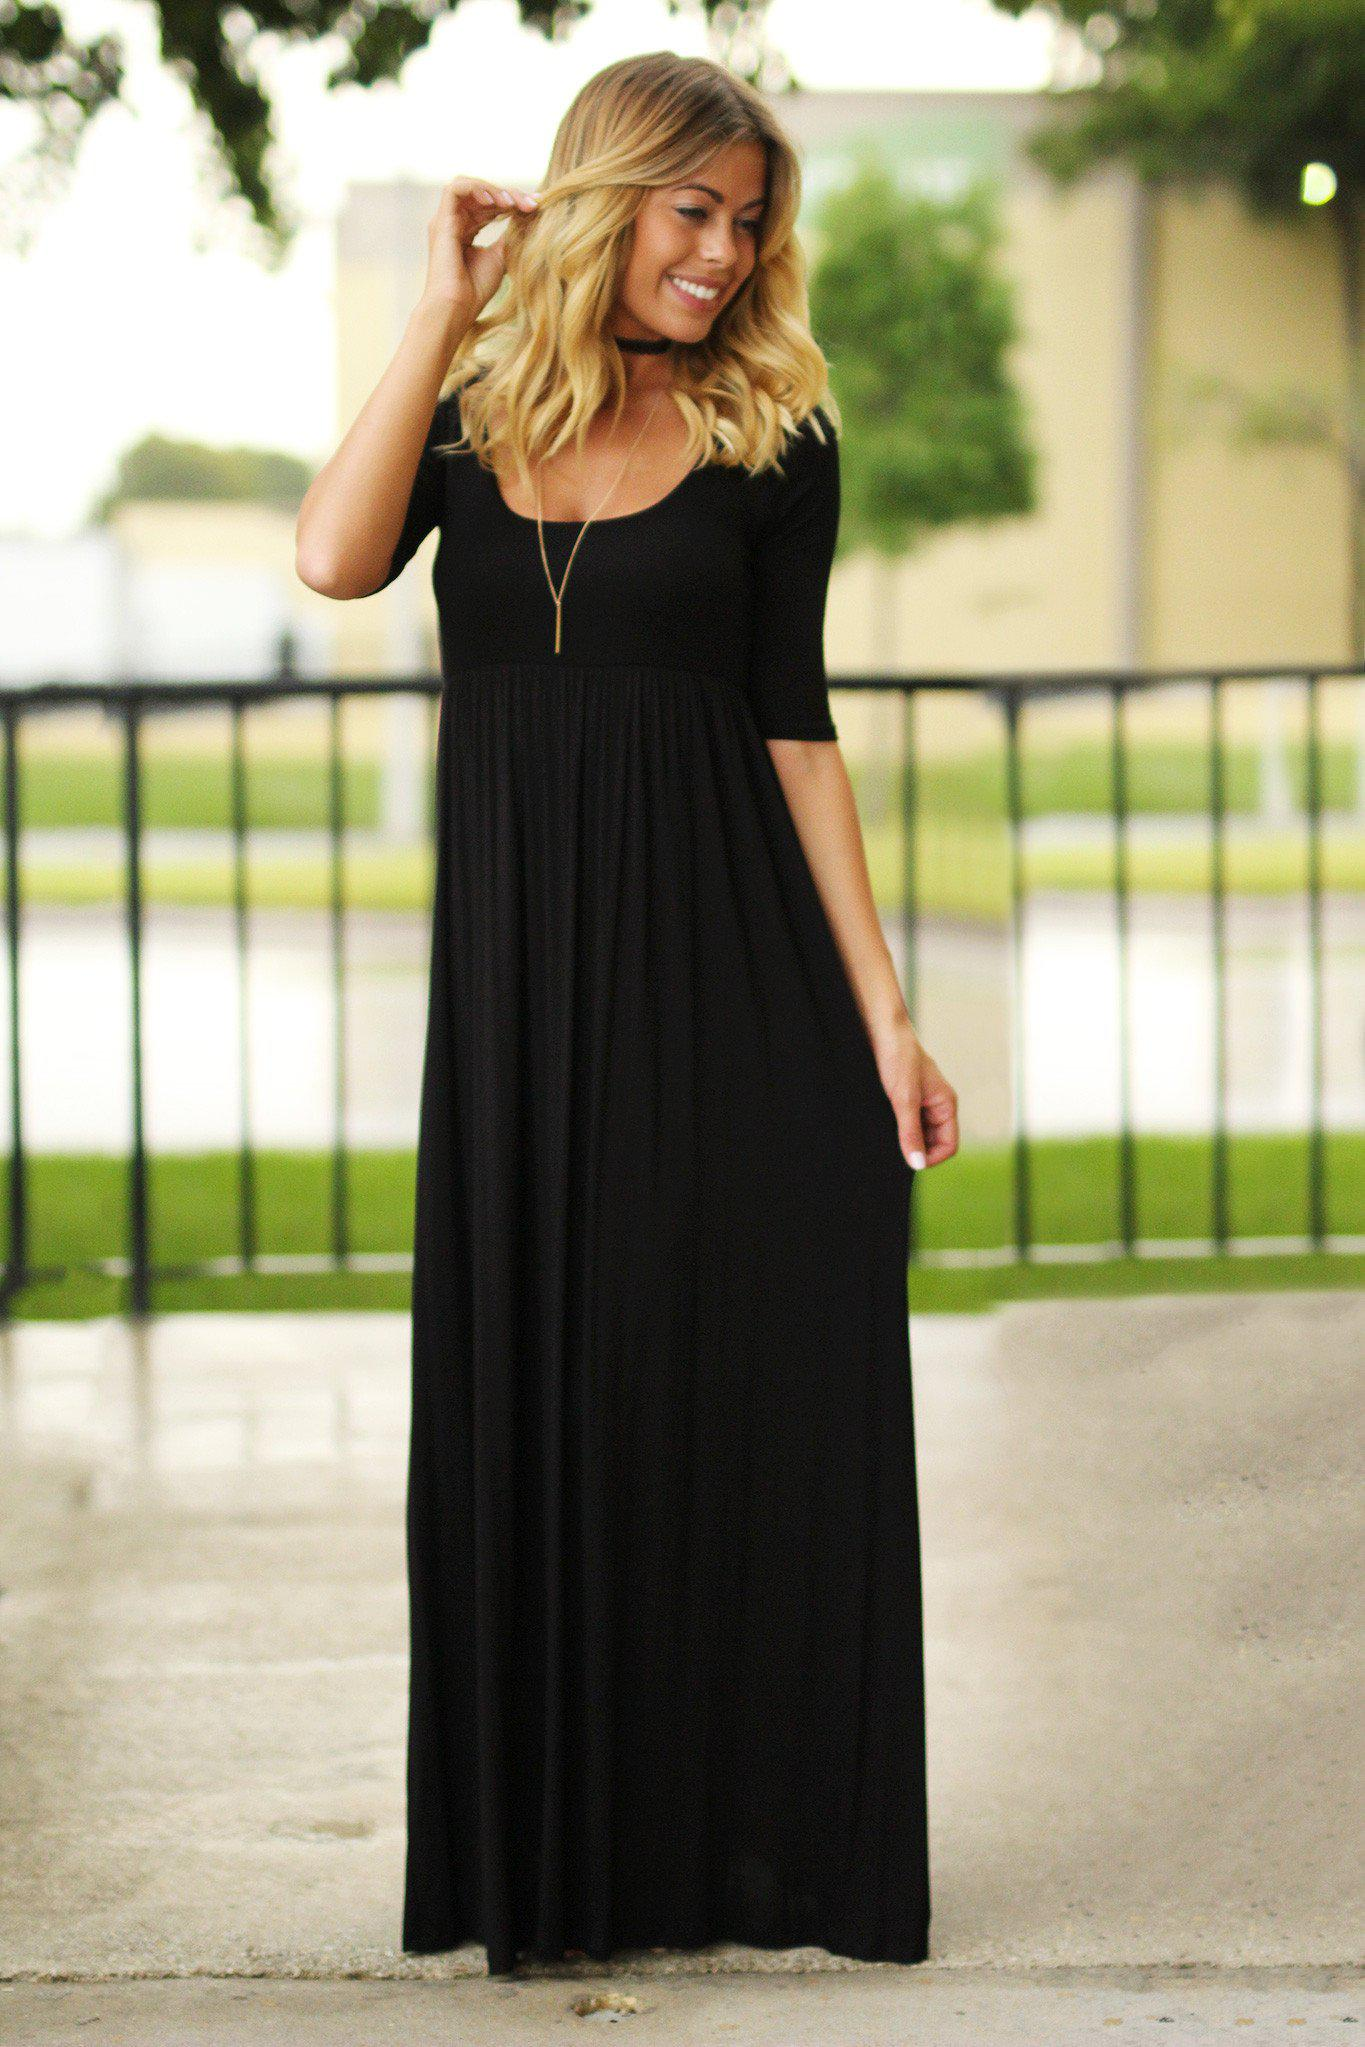 Black Maxi Dress with 3/4 Sleeves | Black Long Dress | Casual Maxi ...